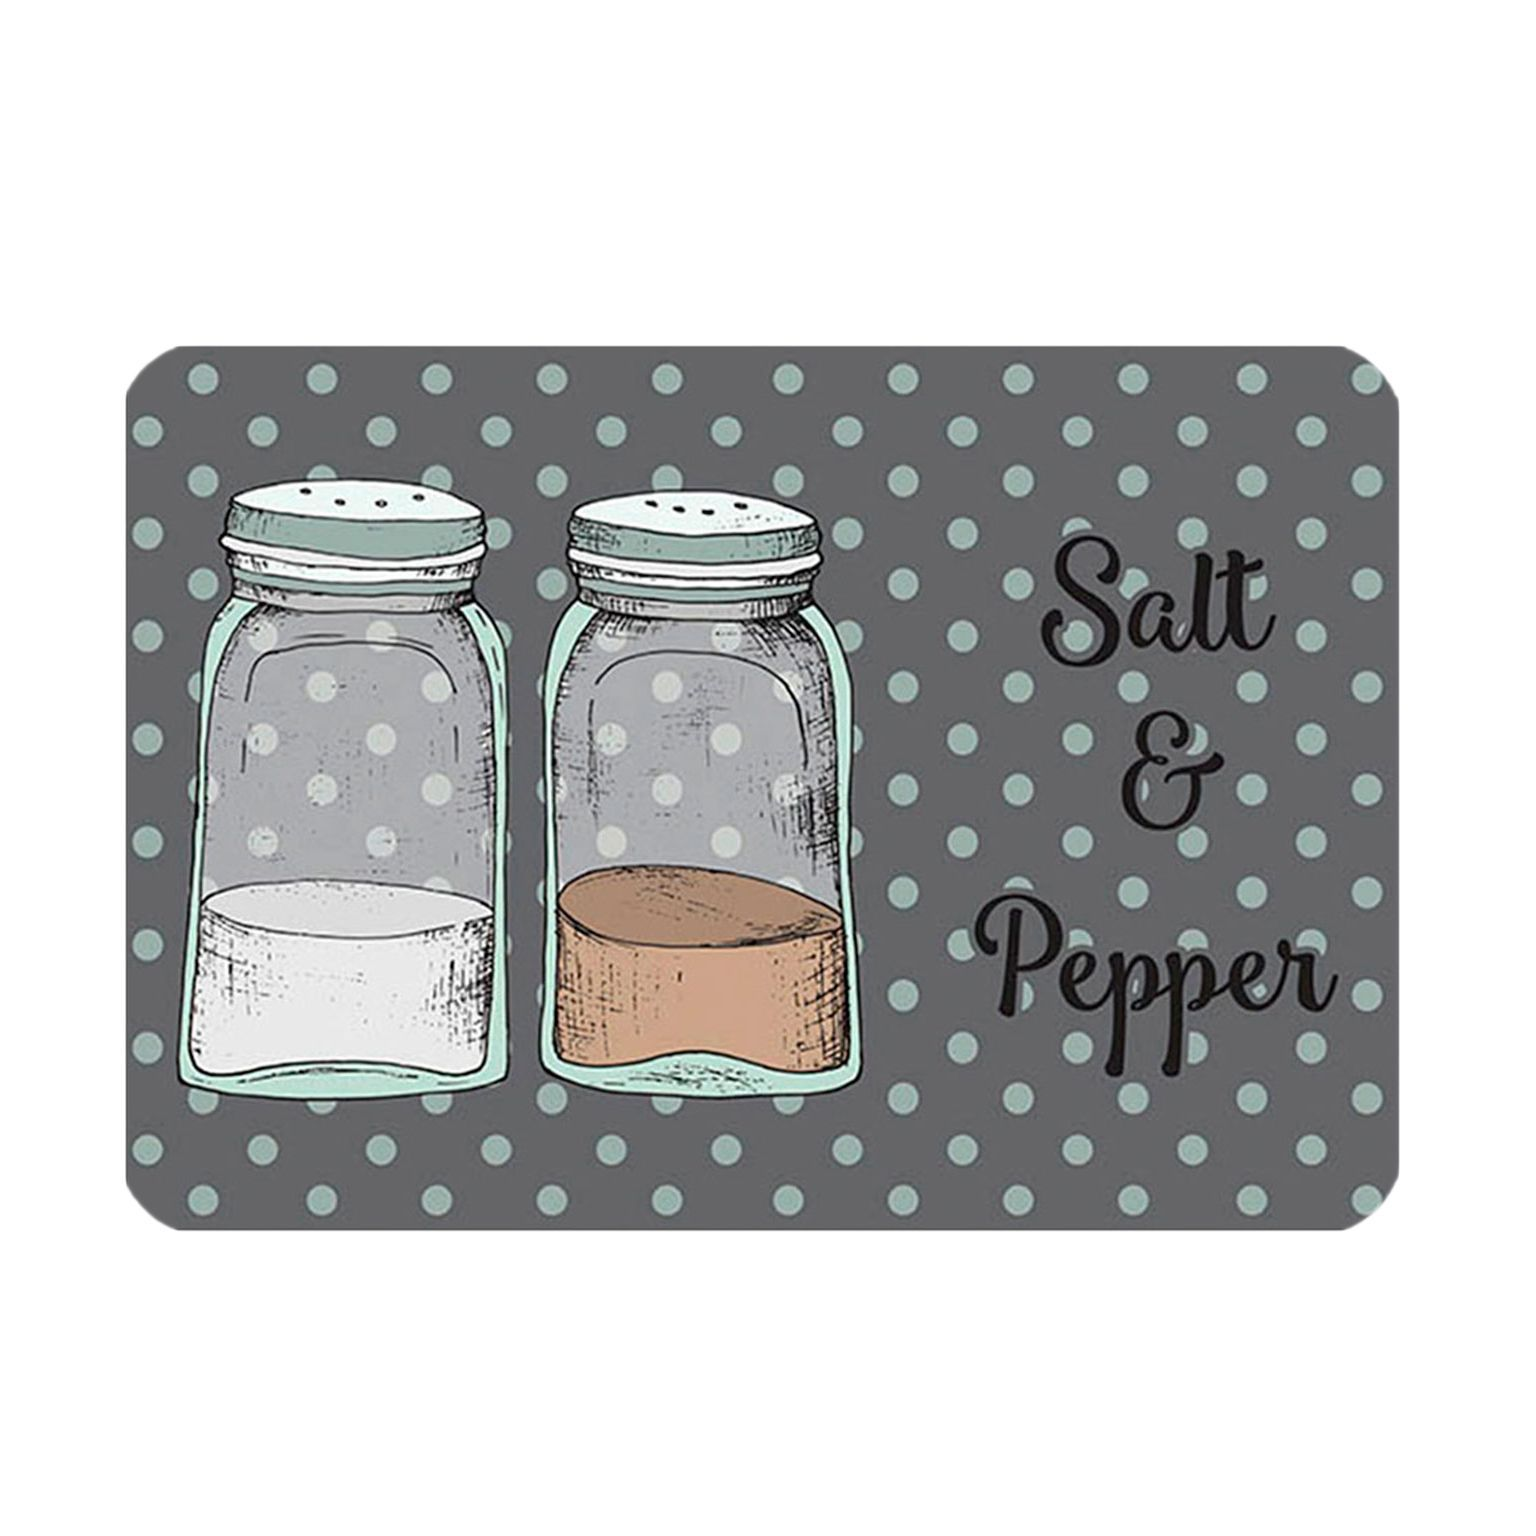 Tapetinho Antiderrapante Salt & Pepper